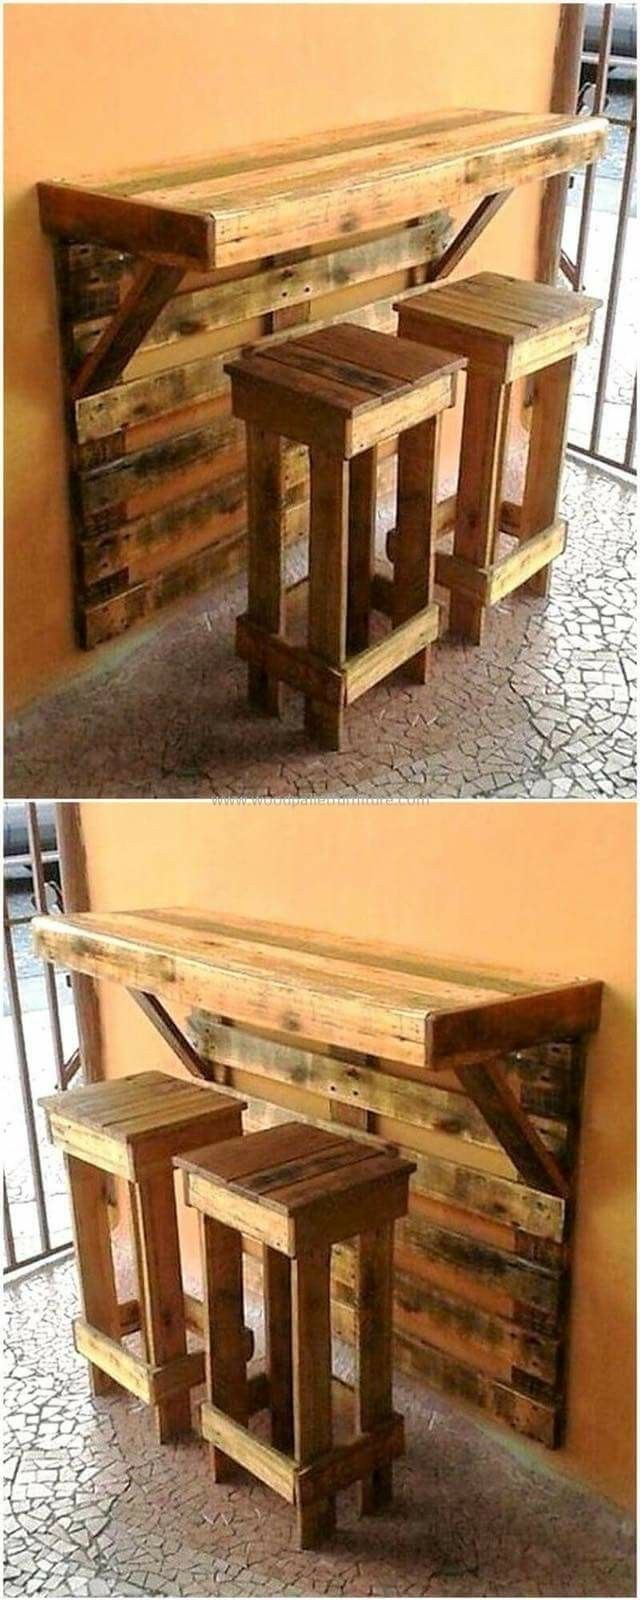 Look at this pallet project a wall mounted bar and stools all diy